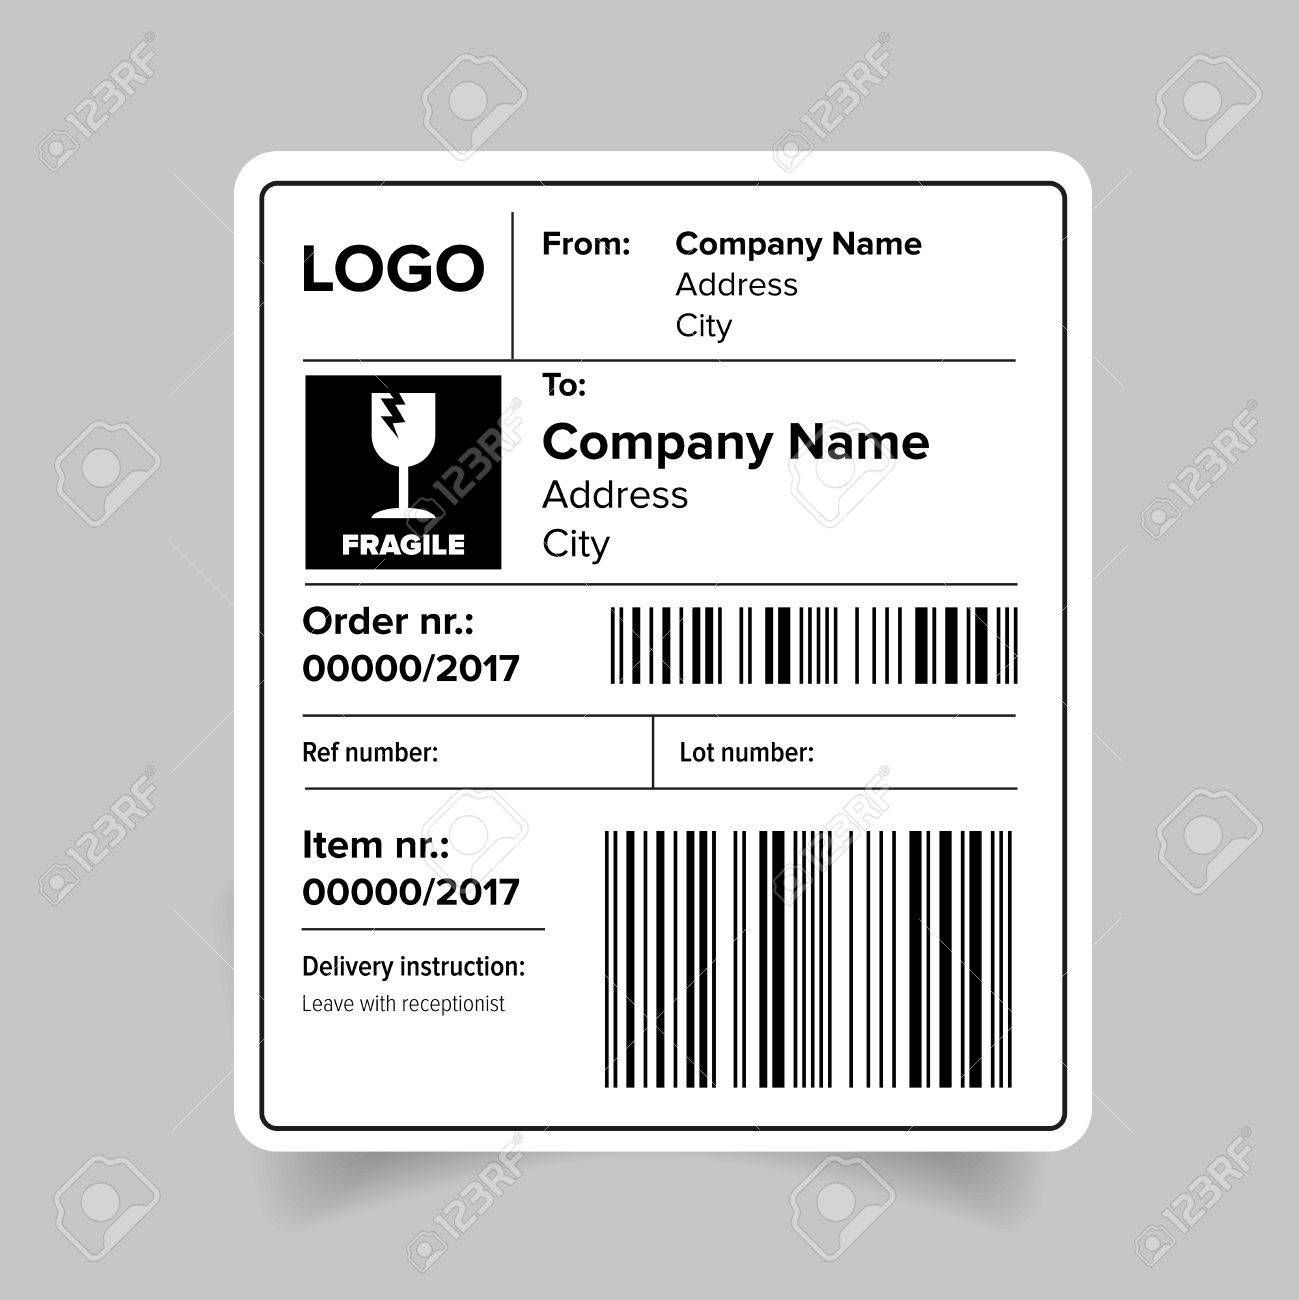 005 Impressive Cute Shipping Label Template Free Concept Full